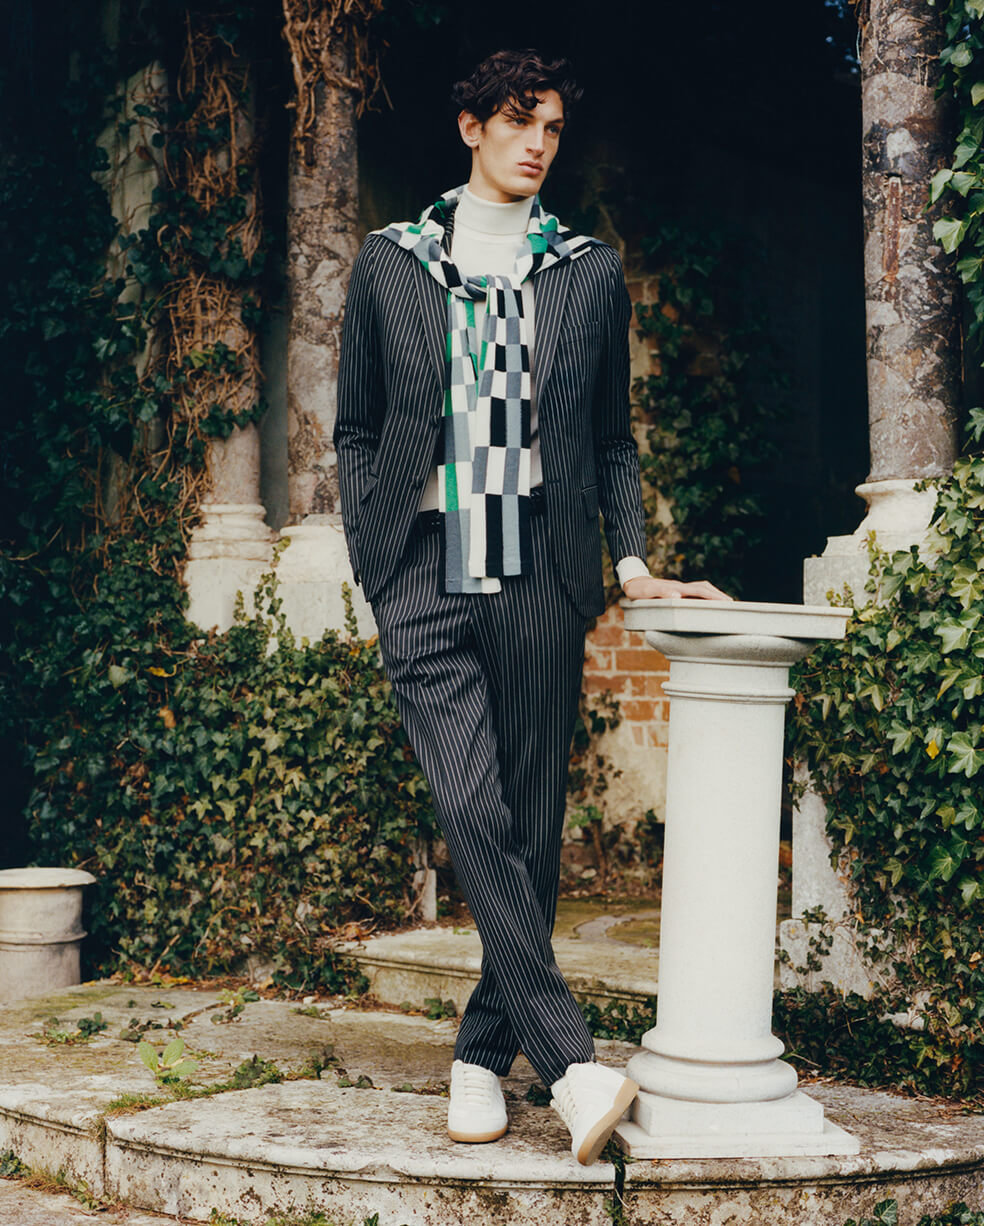 b5593620986 The art of dressing  a men s style guide